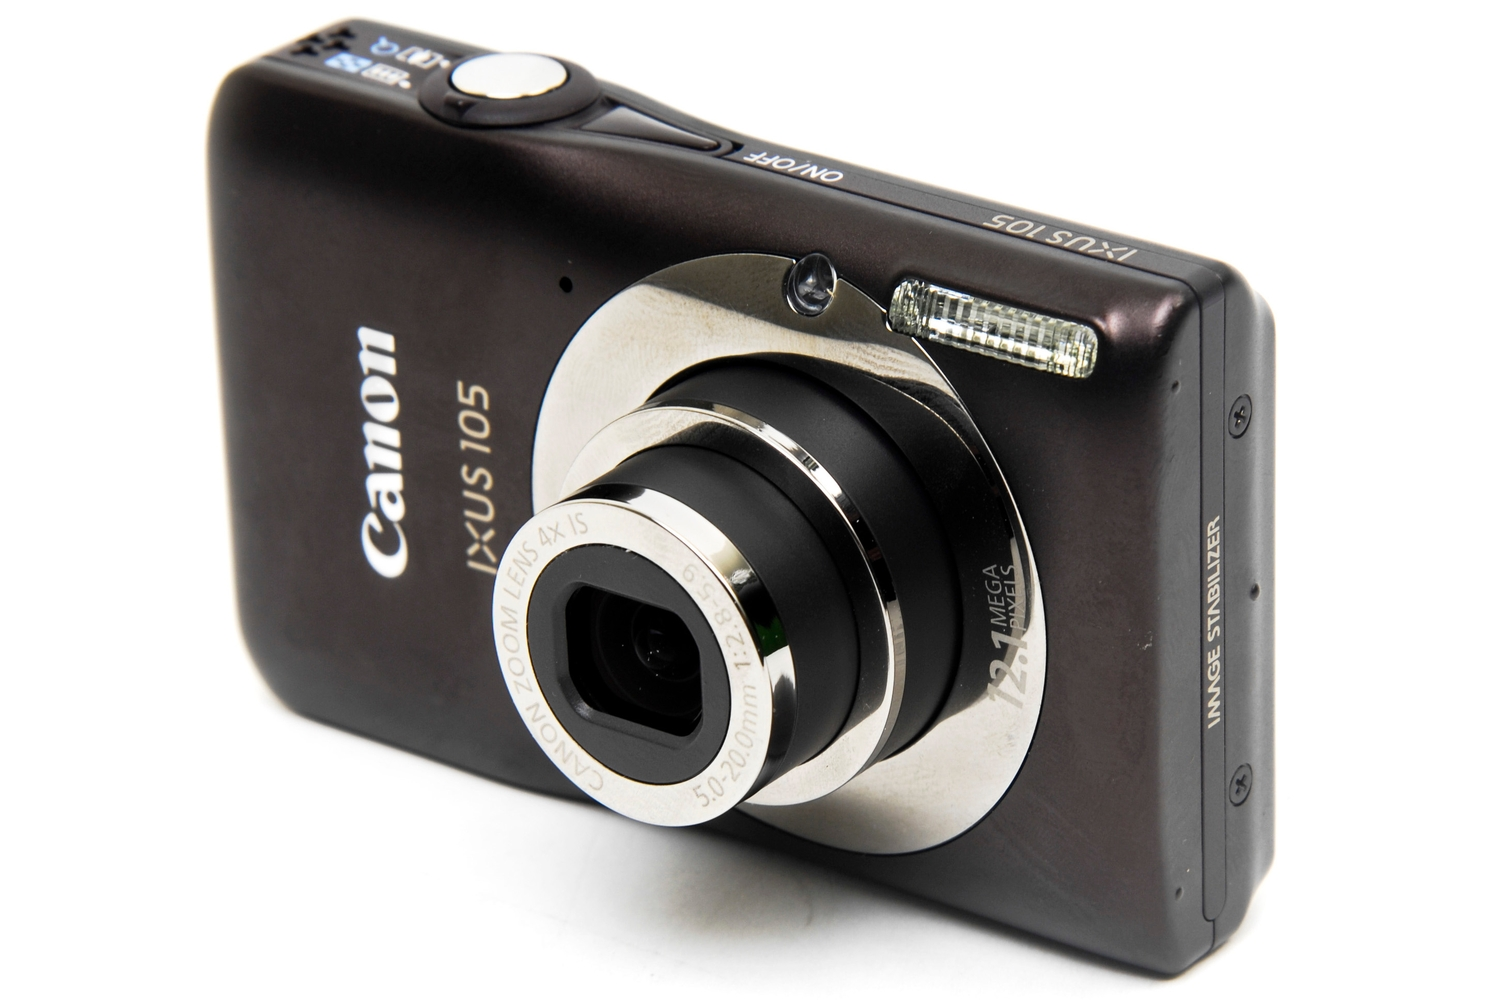 canon ixus 105 is review this compact canon camera delivers consistent results with no nasty. Black Bedroom Furniture Sets. Home Design Ideas